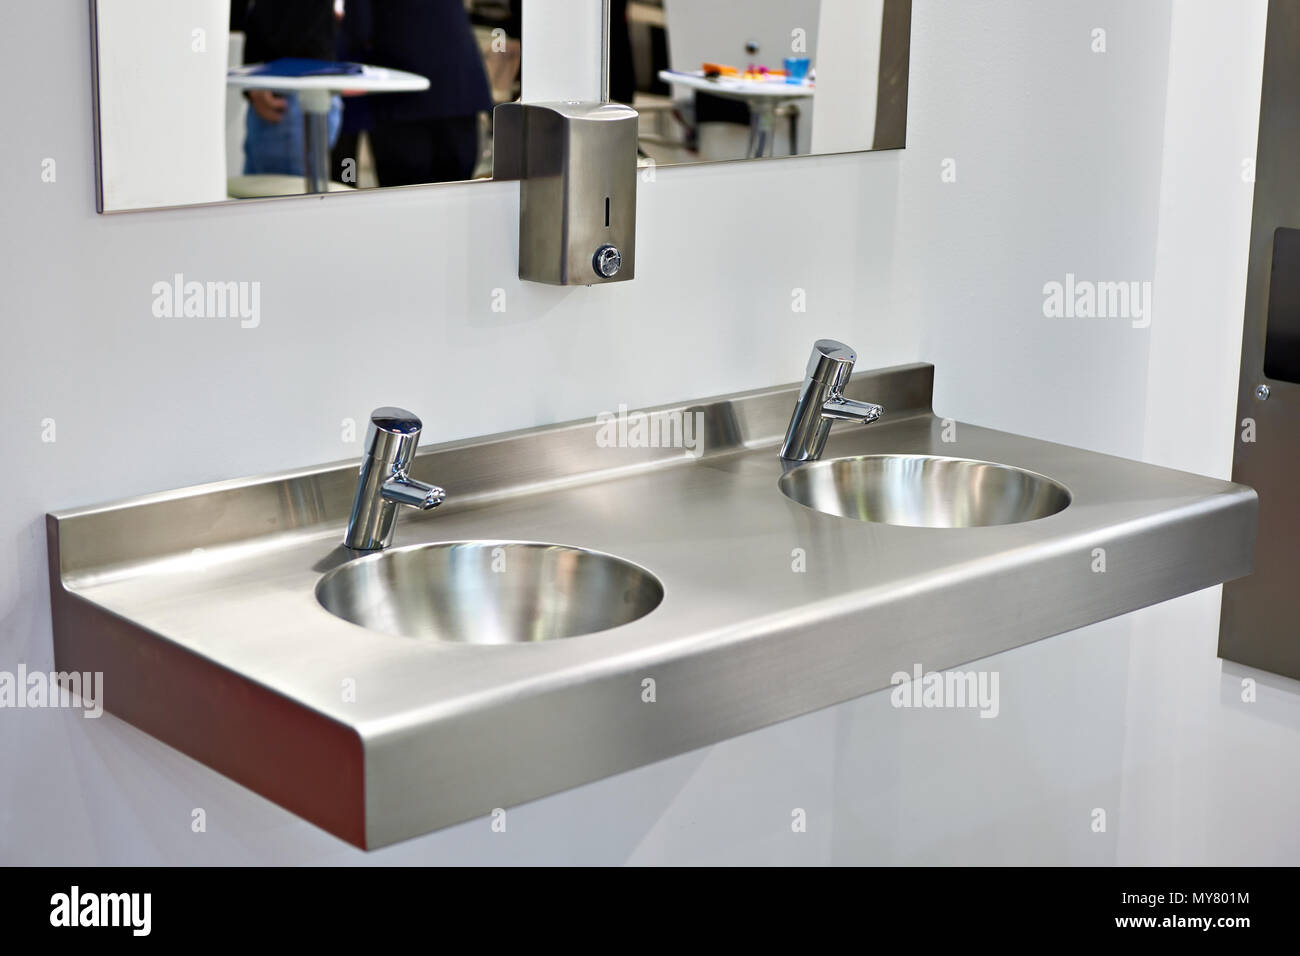 Metal sink with faucets in public toilet Stock Photo: 188875056 - Alamy